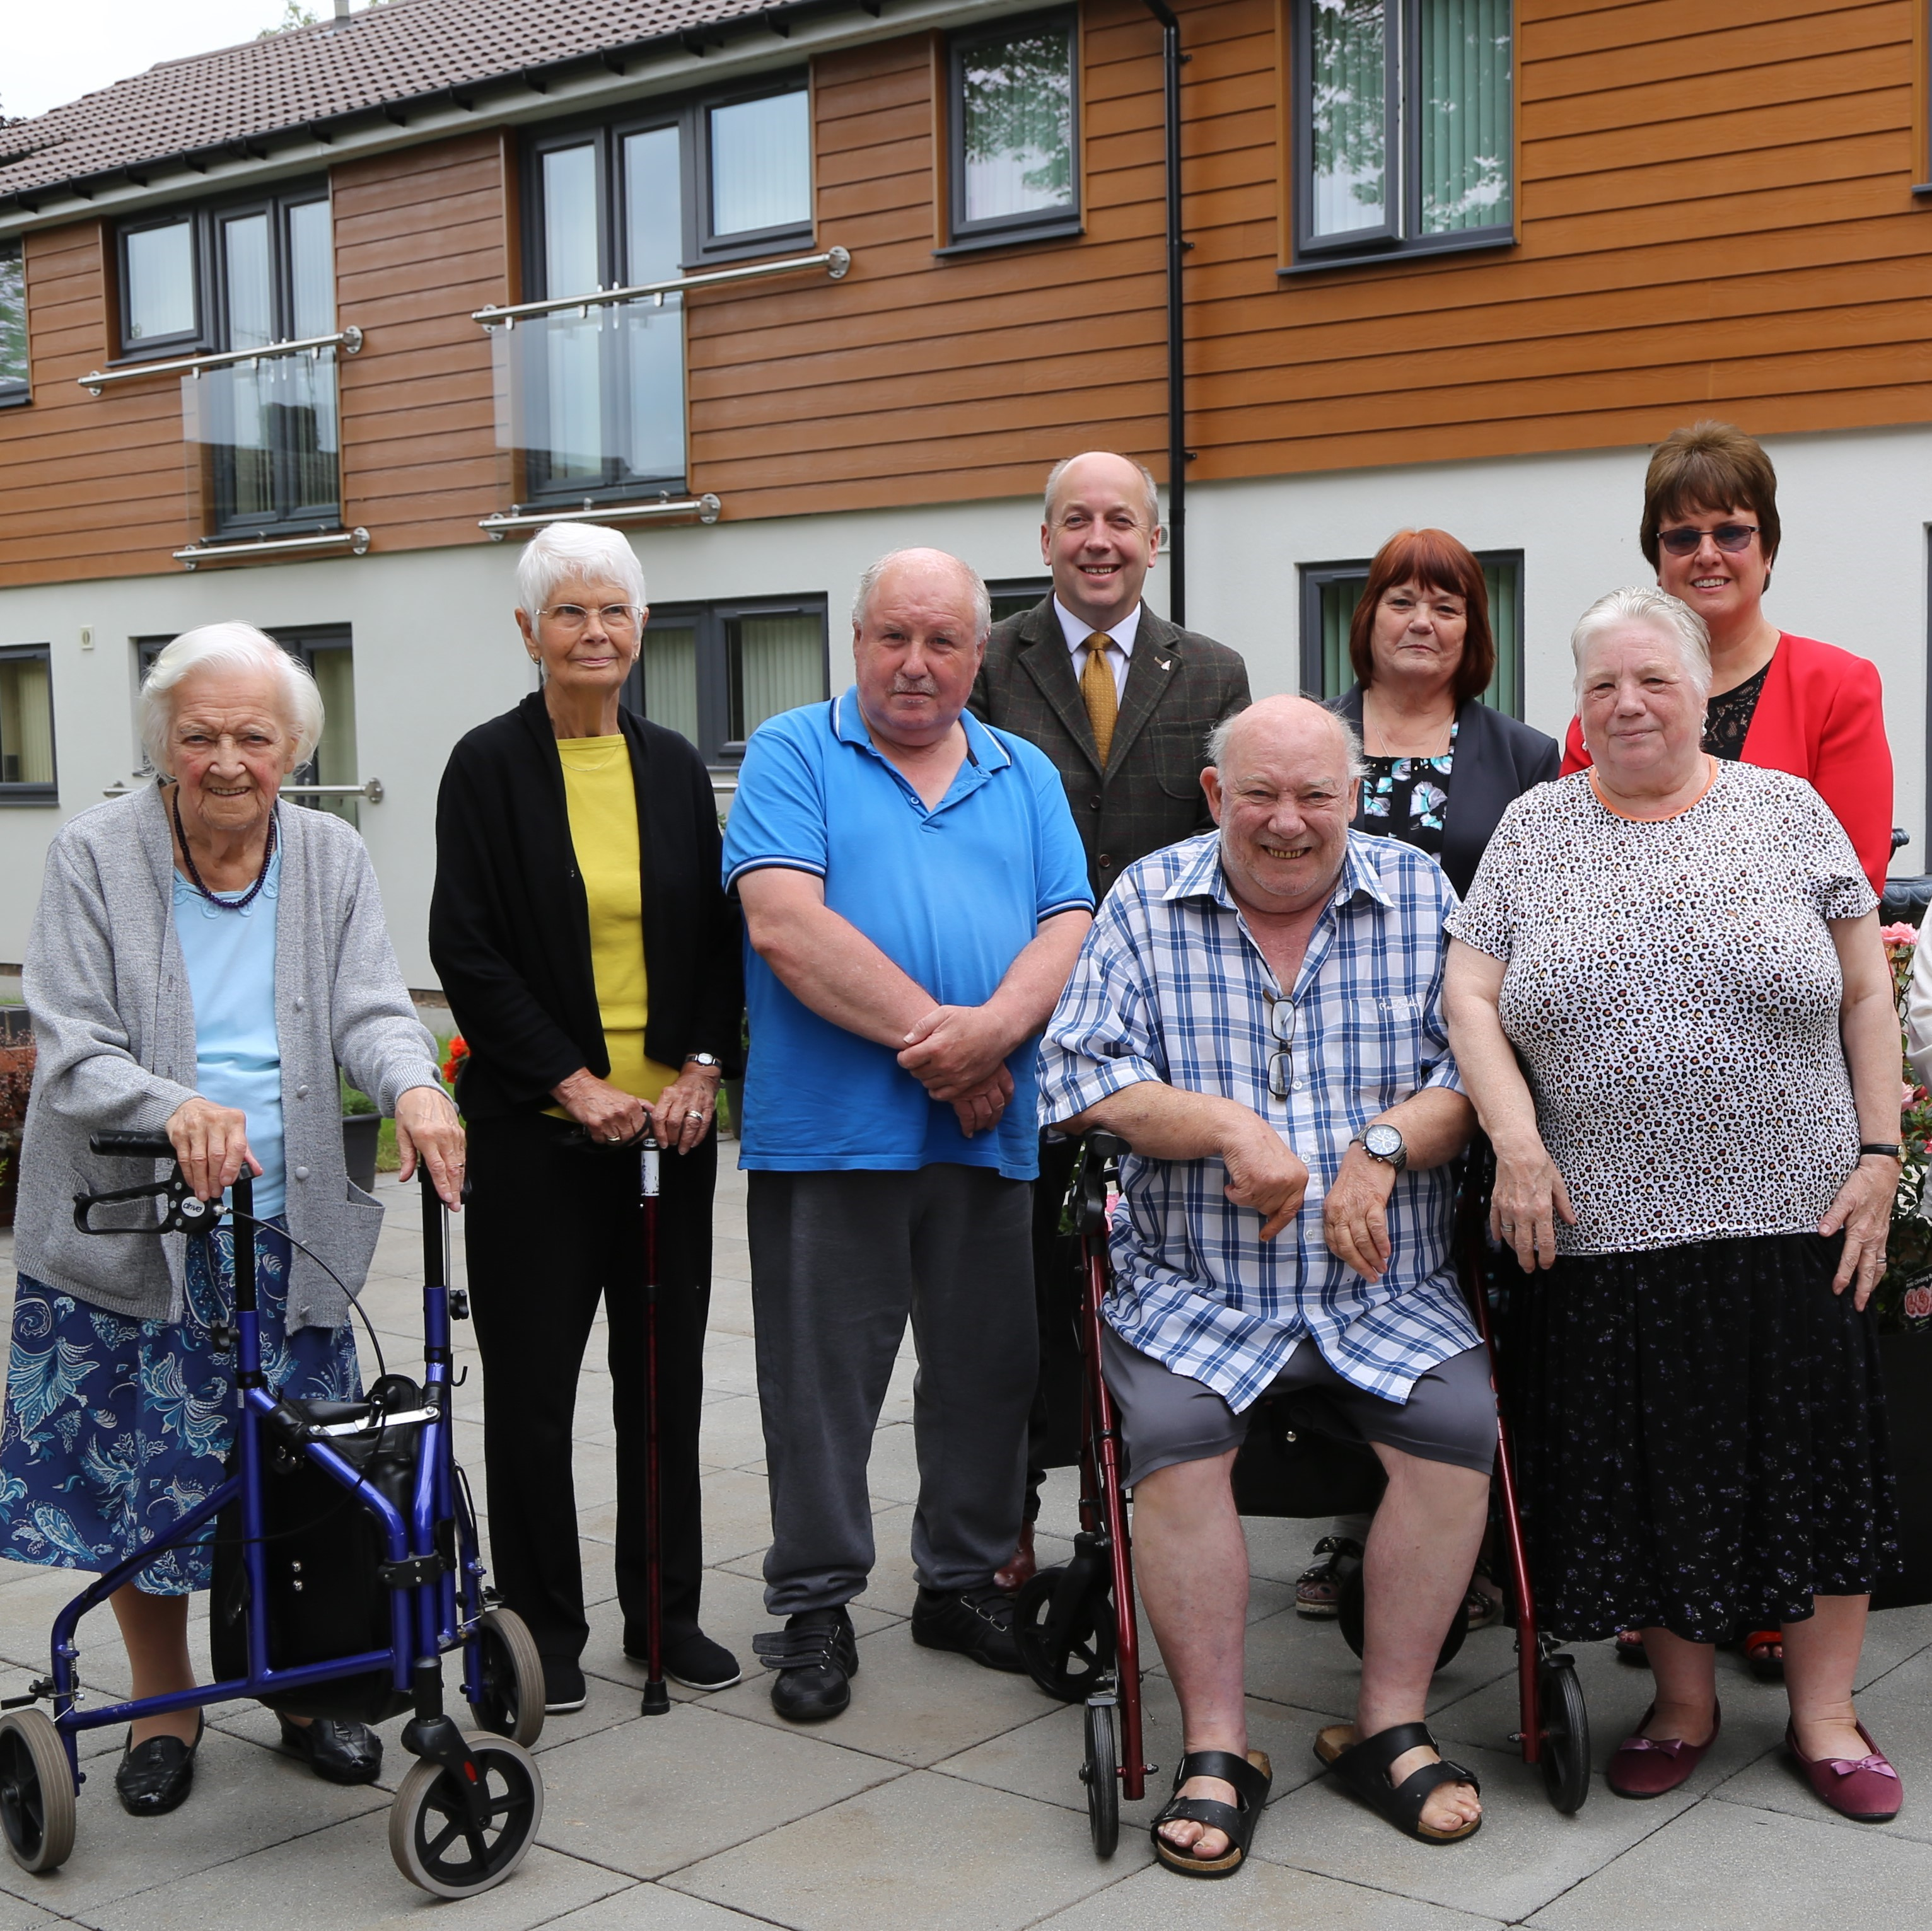 Officially opening Glebe Court